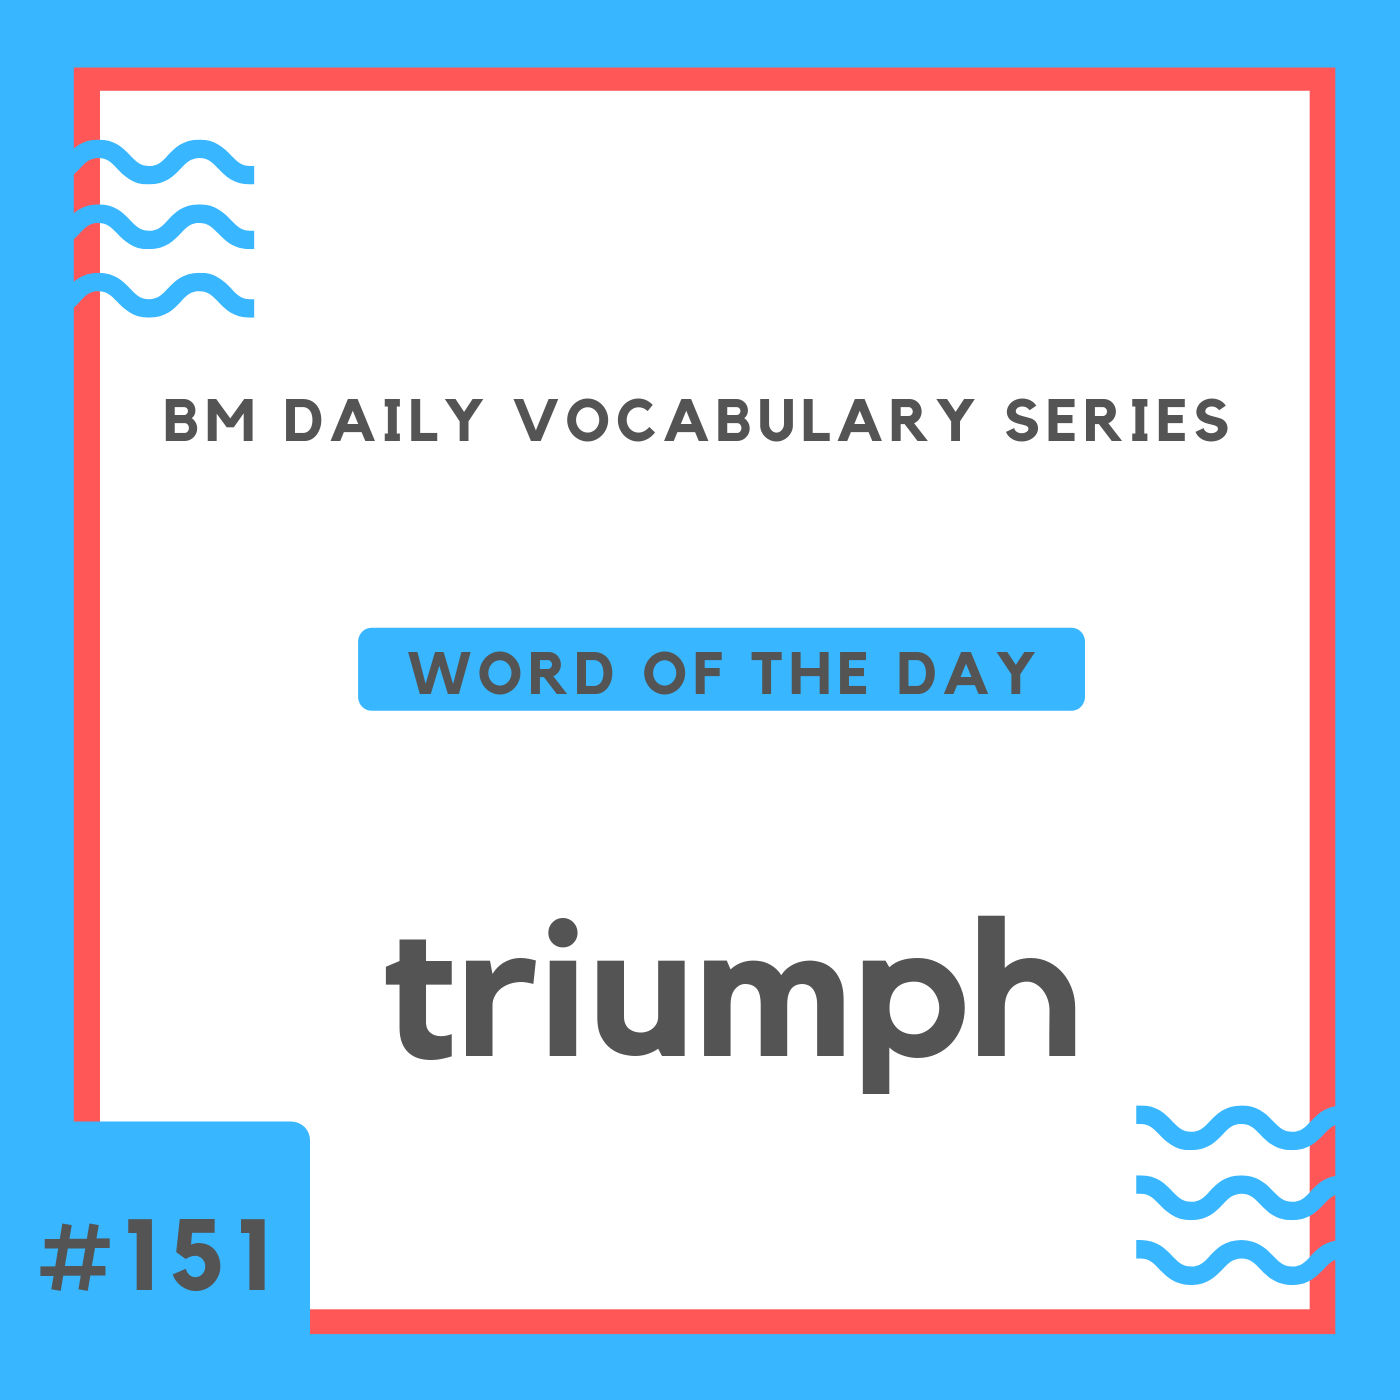 200 BM Daily Vocabulary #151 | triumph